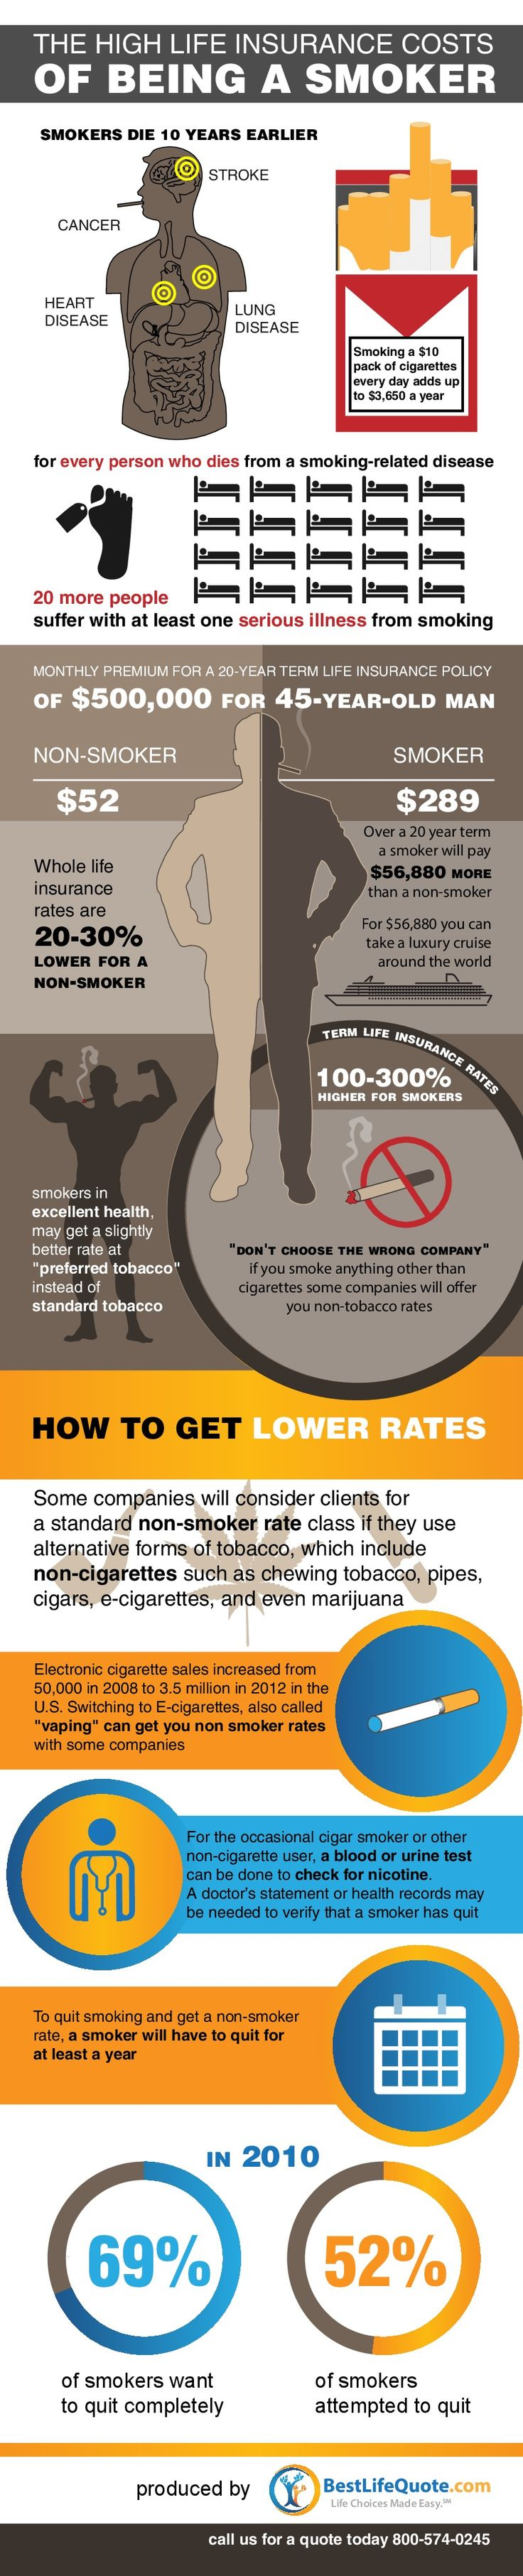 If you re still smoking you might find this infographic motivating